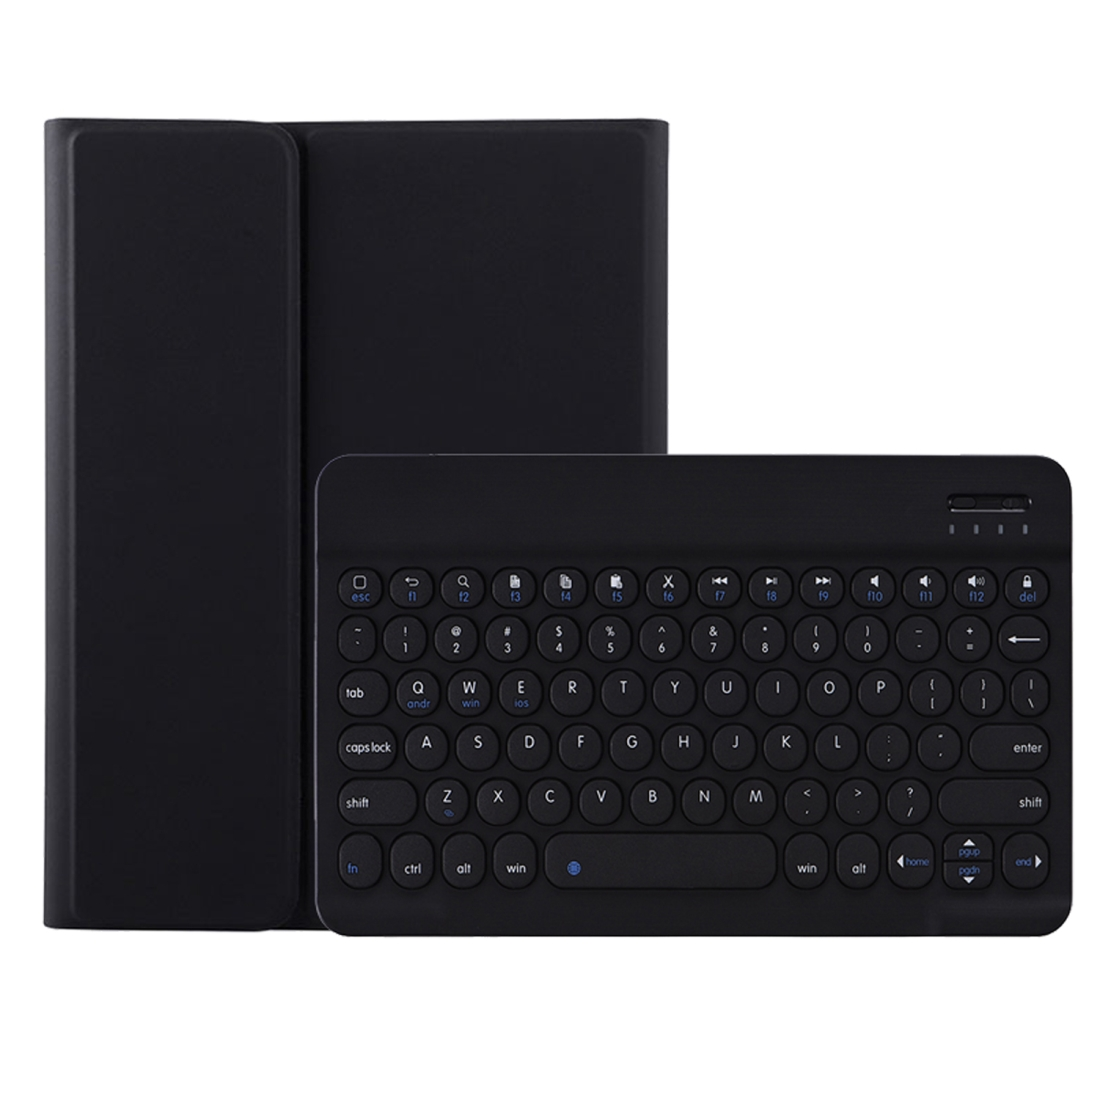 iPad Air Case With Keyboard For iPad 10.2 Inch / iPad Air 3 / Pro 10.5 inch (Black)